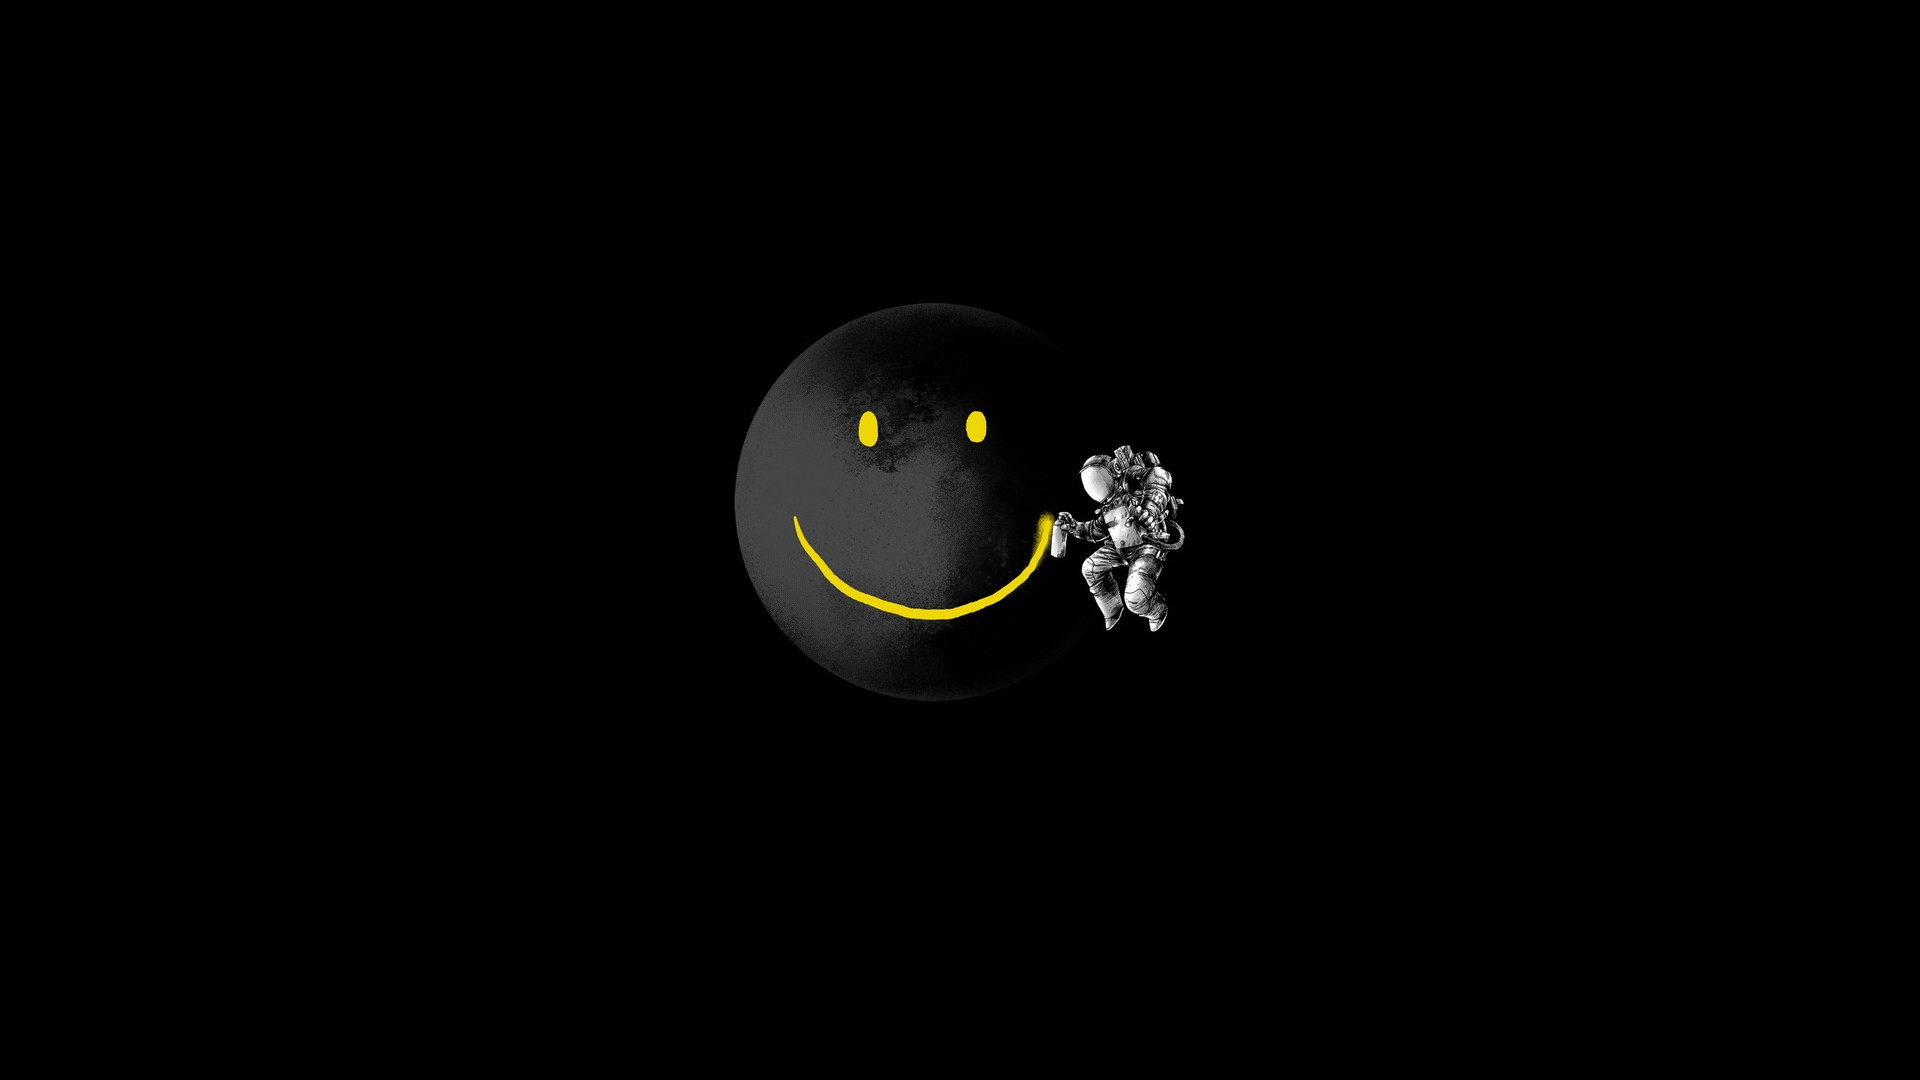 Smiley Face Spaceman Black Background 1920A Wallpaper